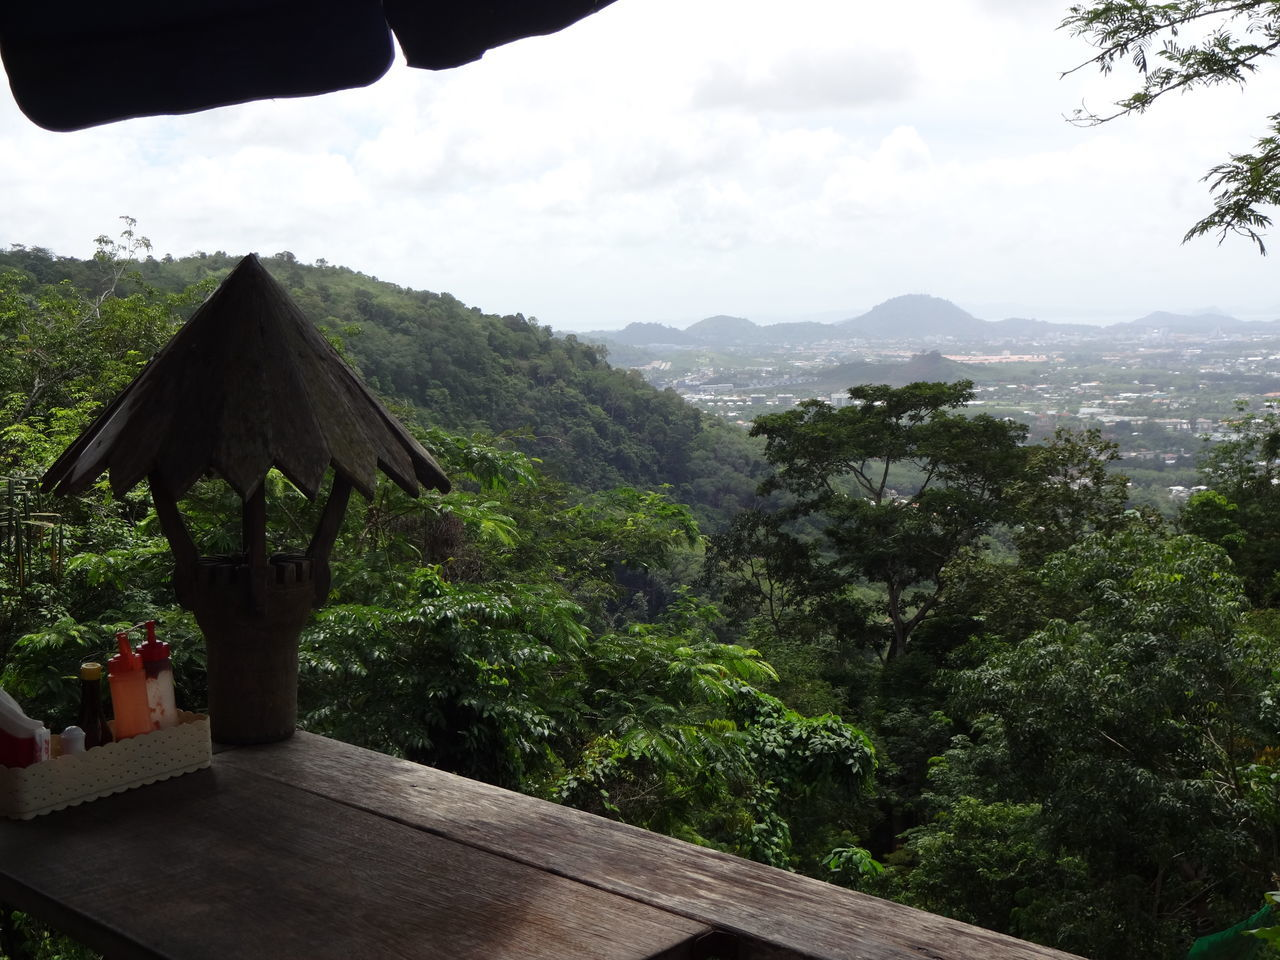 Landscape of rainforest and town